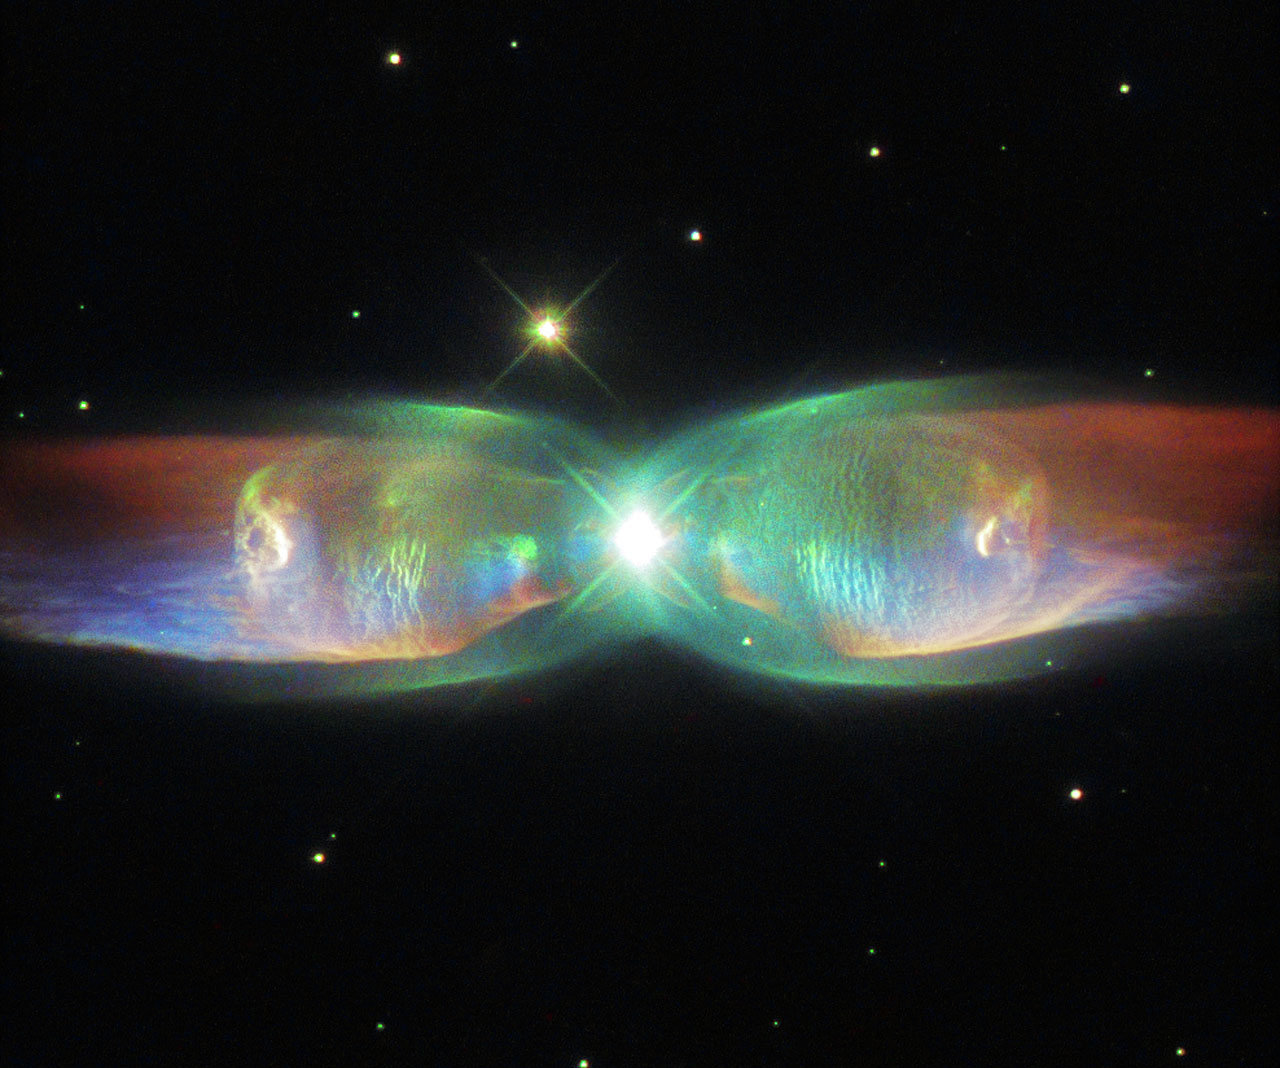 The shimmering colors visible in this NASA/ESA Hubble Space Telescope image show off the remarkable complexity of the Twin Jet Nebula.